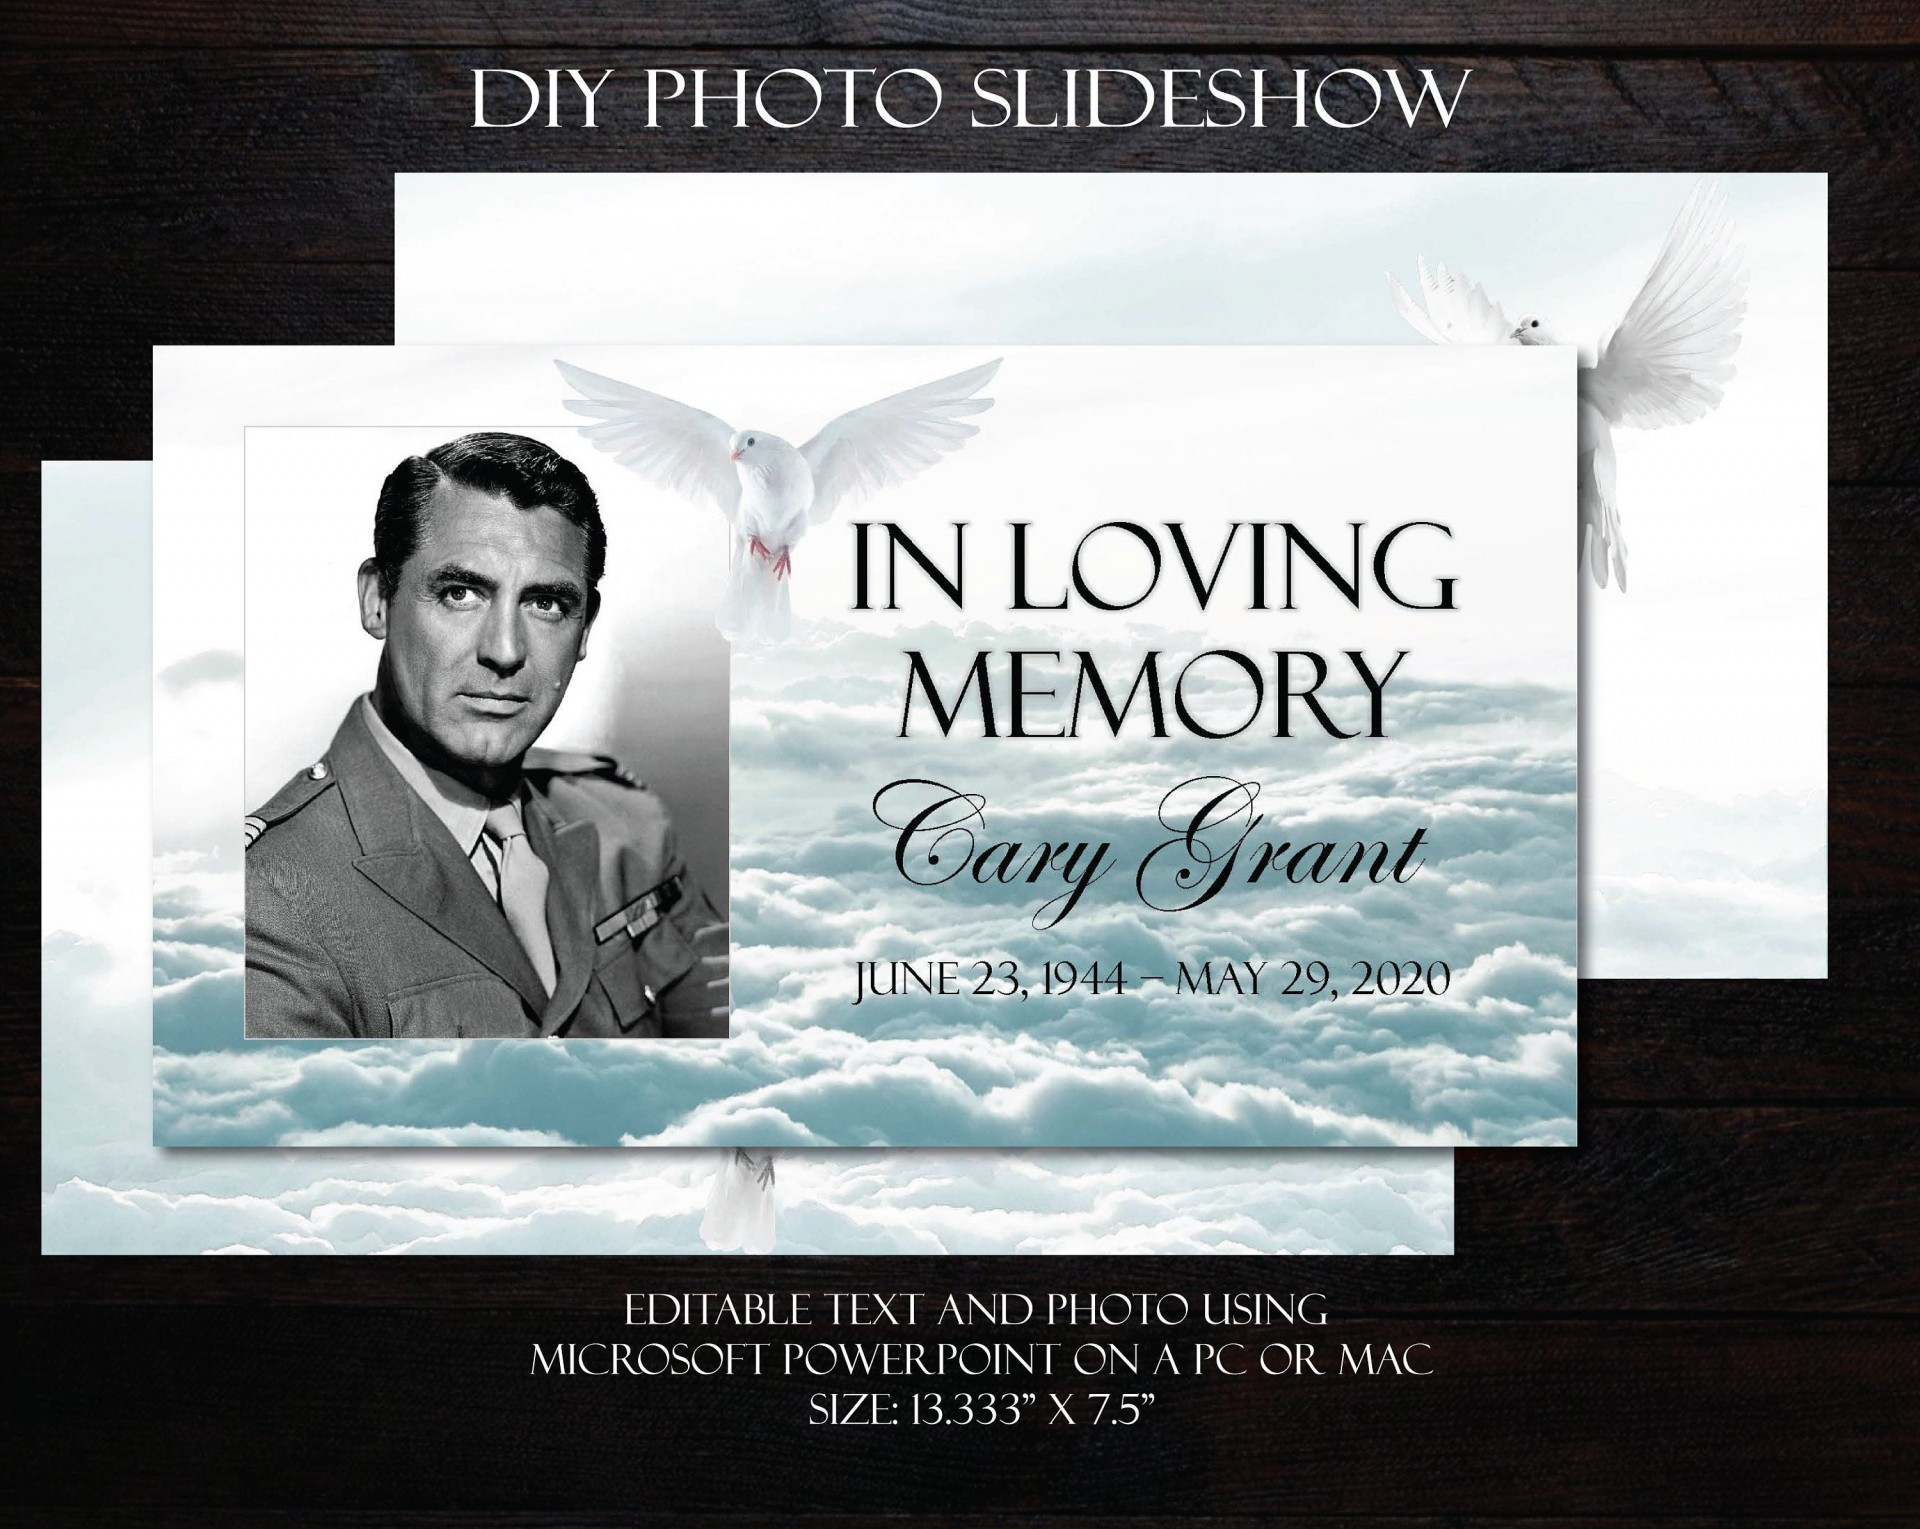 001 Incredible In Loving Memory Powerpoint Template Free Download High Def 1920